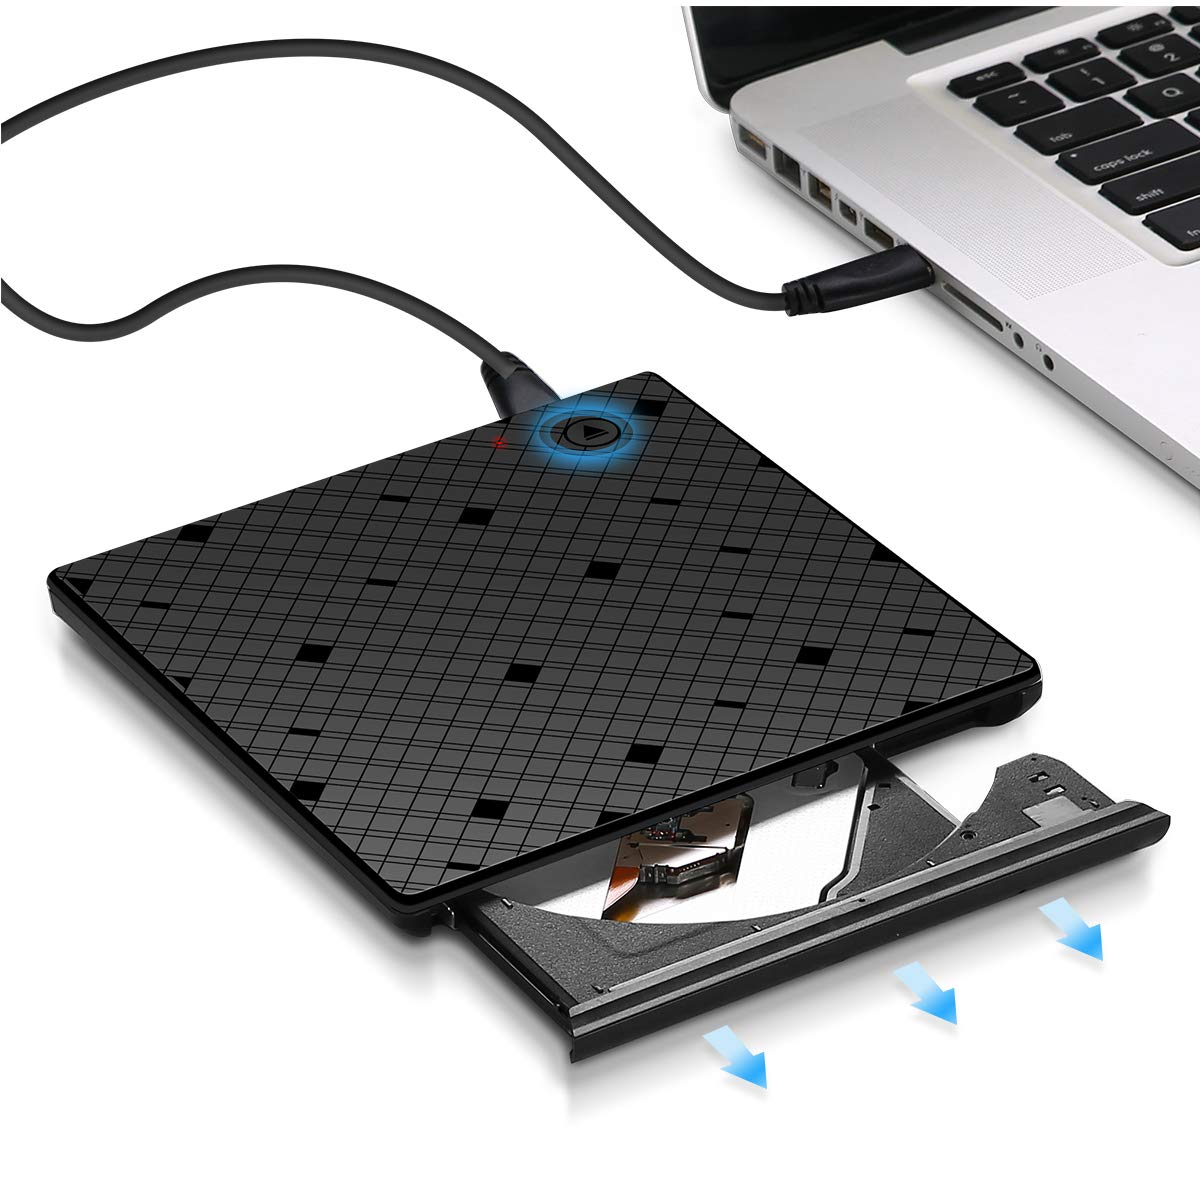 YAHEY External CD Drive USB 3.0 DVD Drive for mac External Disk Drive Player with Touch Control Eject Button Compatible with All Desktop Computers and laptops